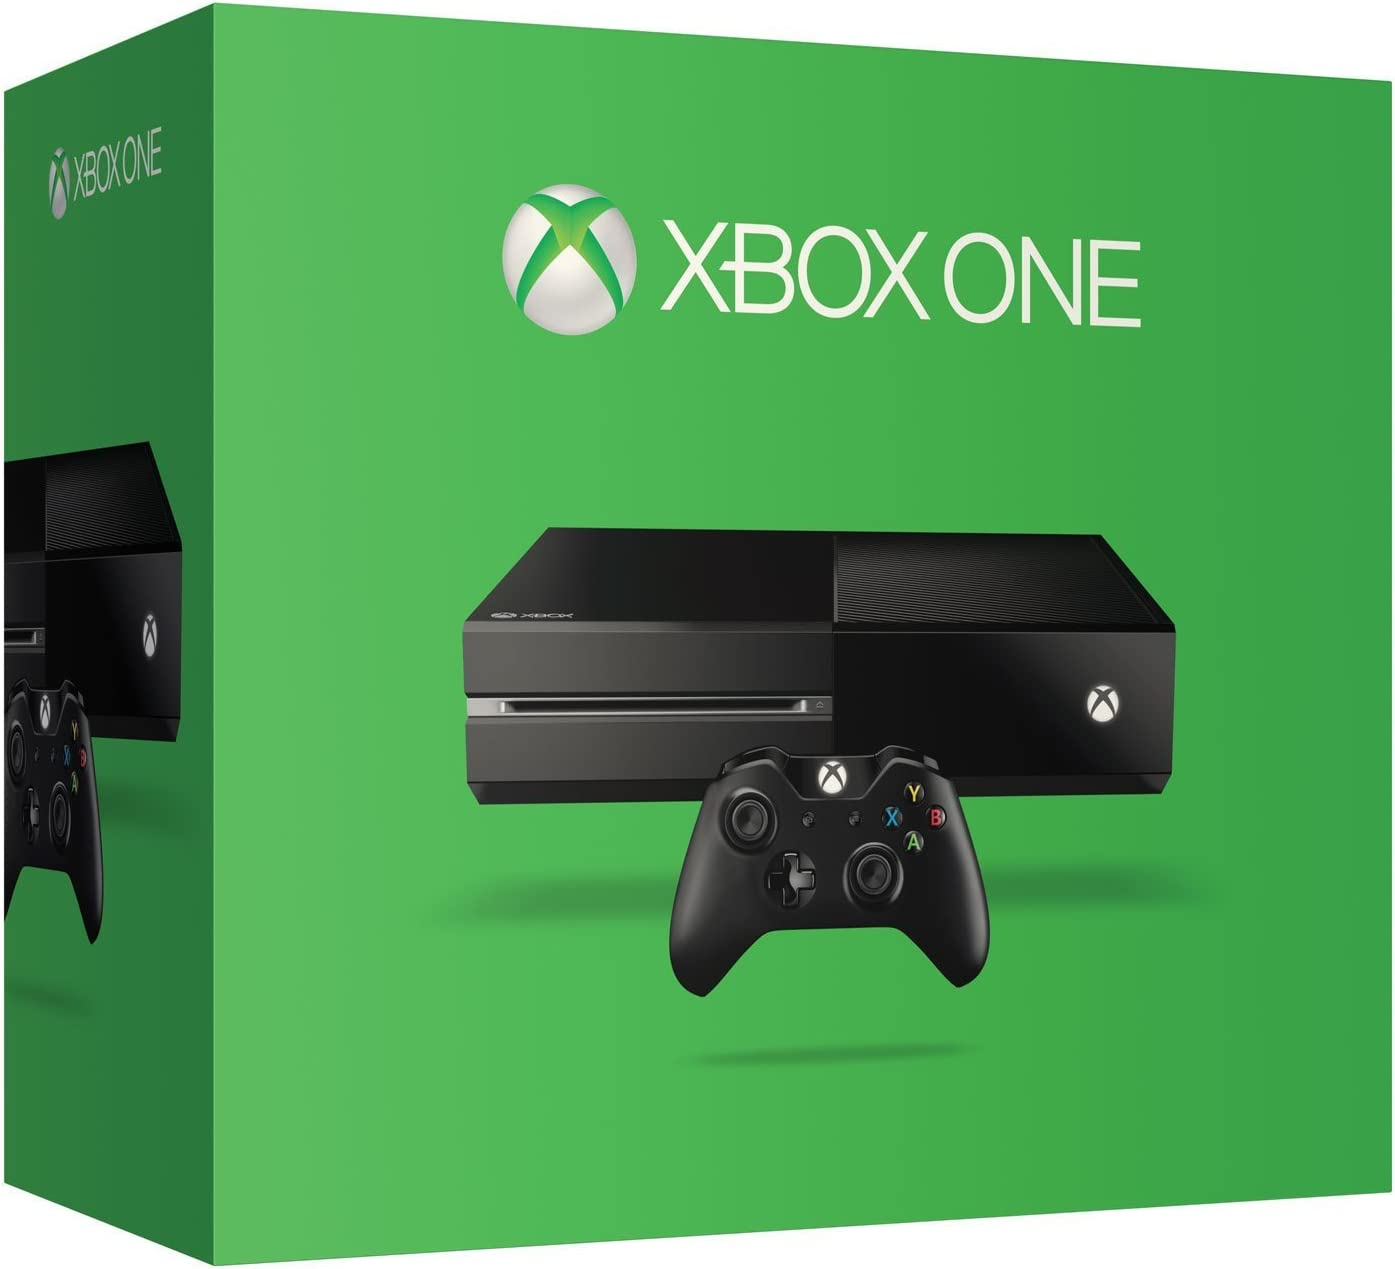 09ee3b7fc Amazon.com: Xbox One 500 GB Console - Black [Discontinued]: Video Games